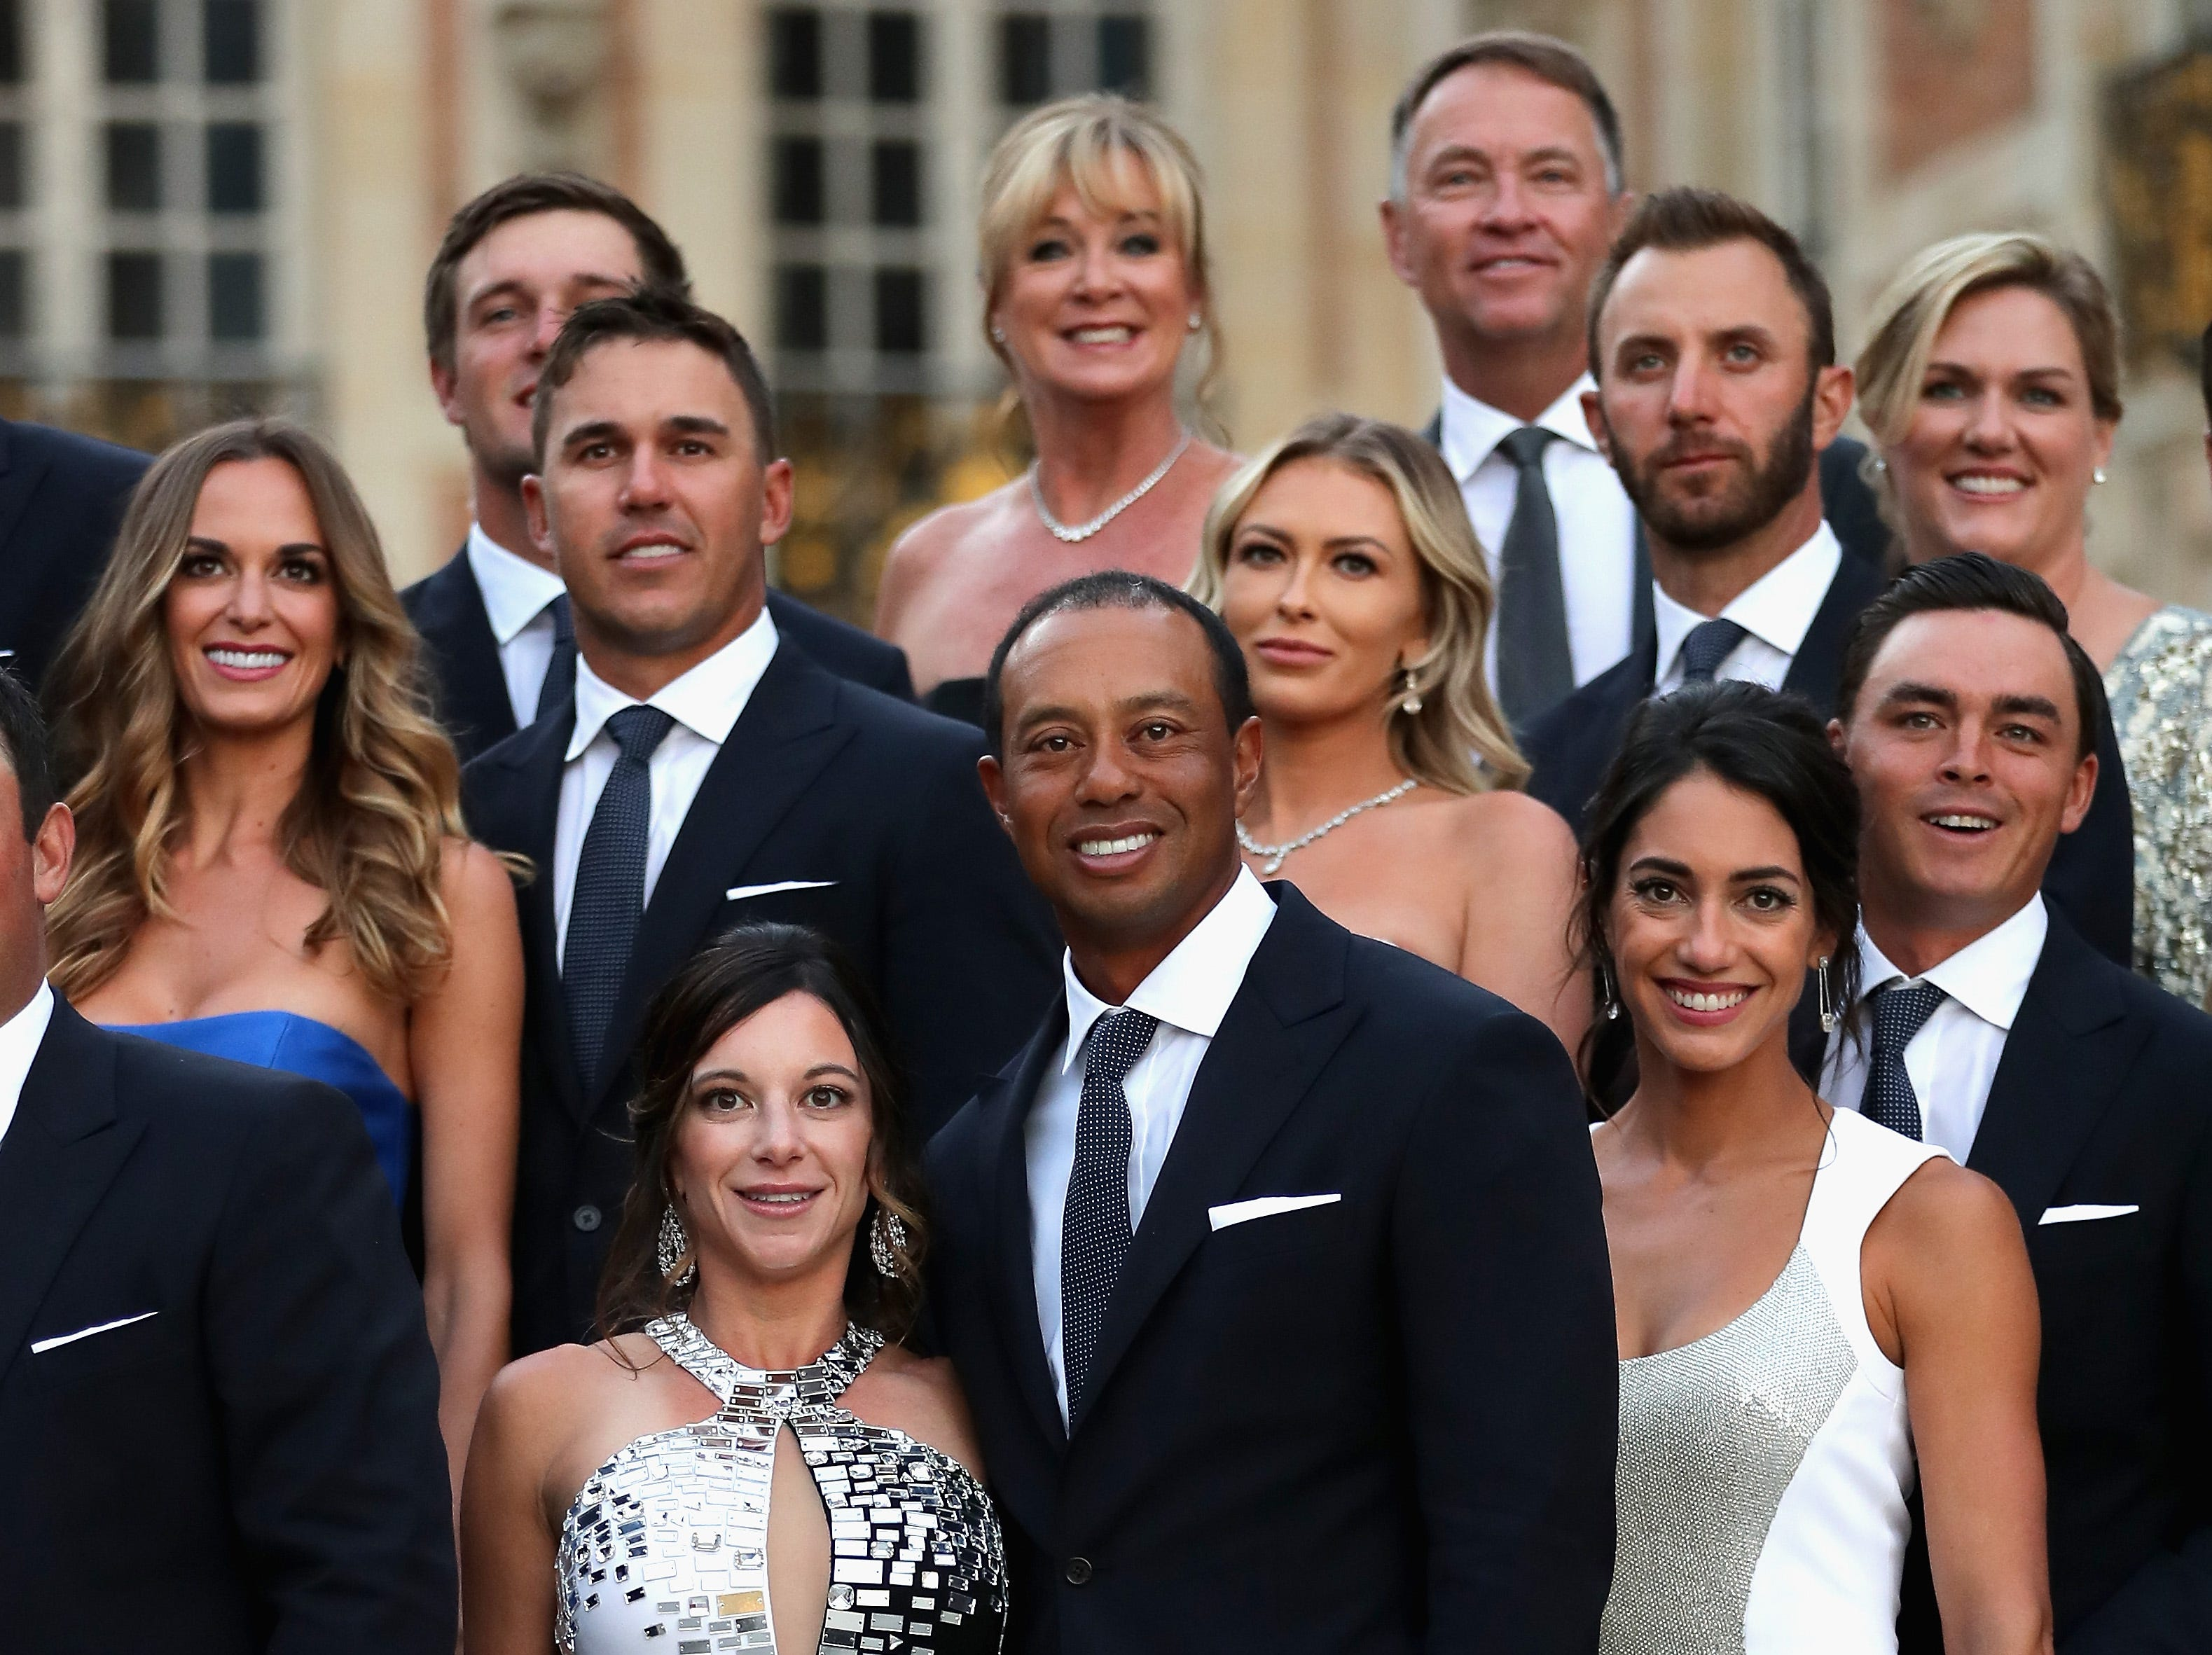 Tiger Woods poses with girlfriend Erica Herman before the Ryder Cup gala dinner at the Palace of Versailles on Sept. 26.